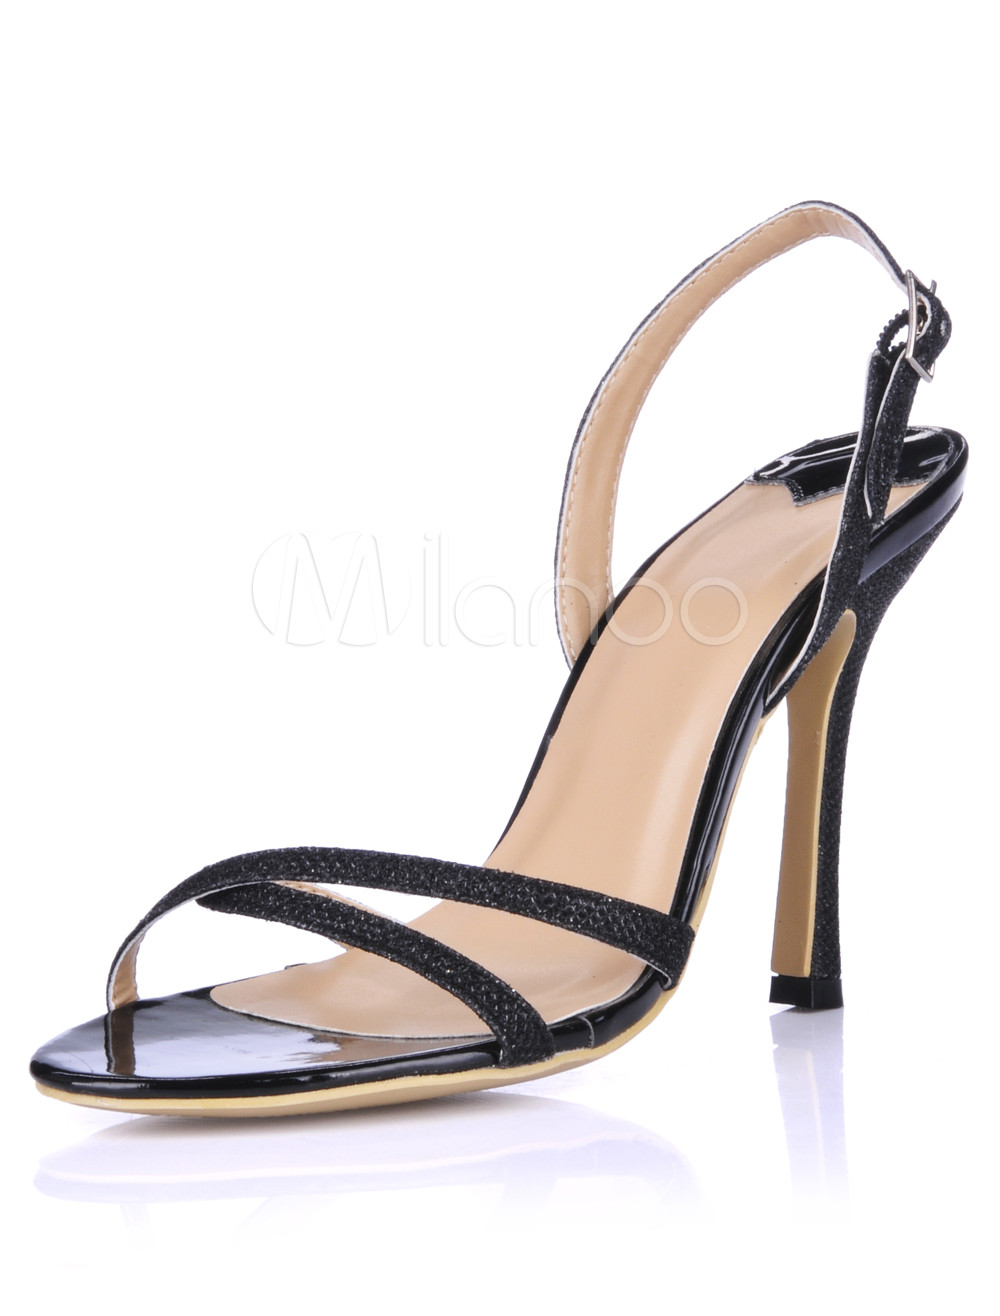 Milanoo / Elegant Sling Back Glazed PU Women's Dress Sandals